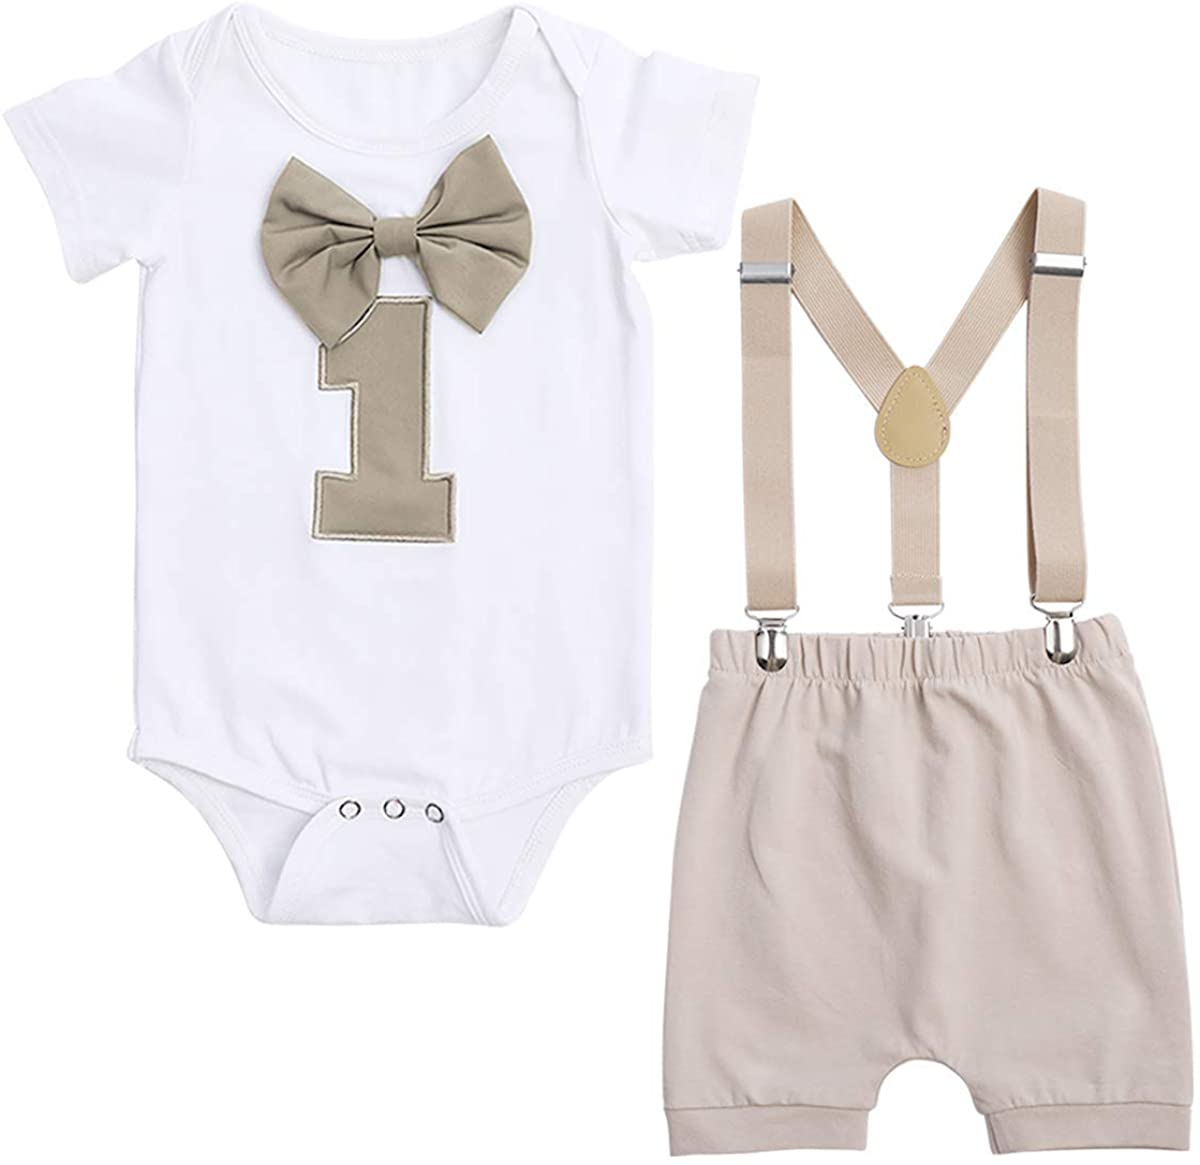 Baby Boy Birthday Outfits for 1 Year Old Infant Toddler Shorts Clothing Set